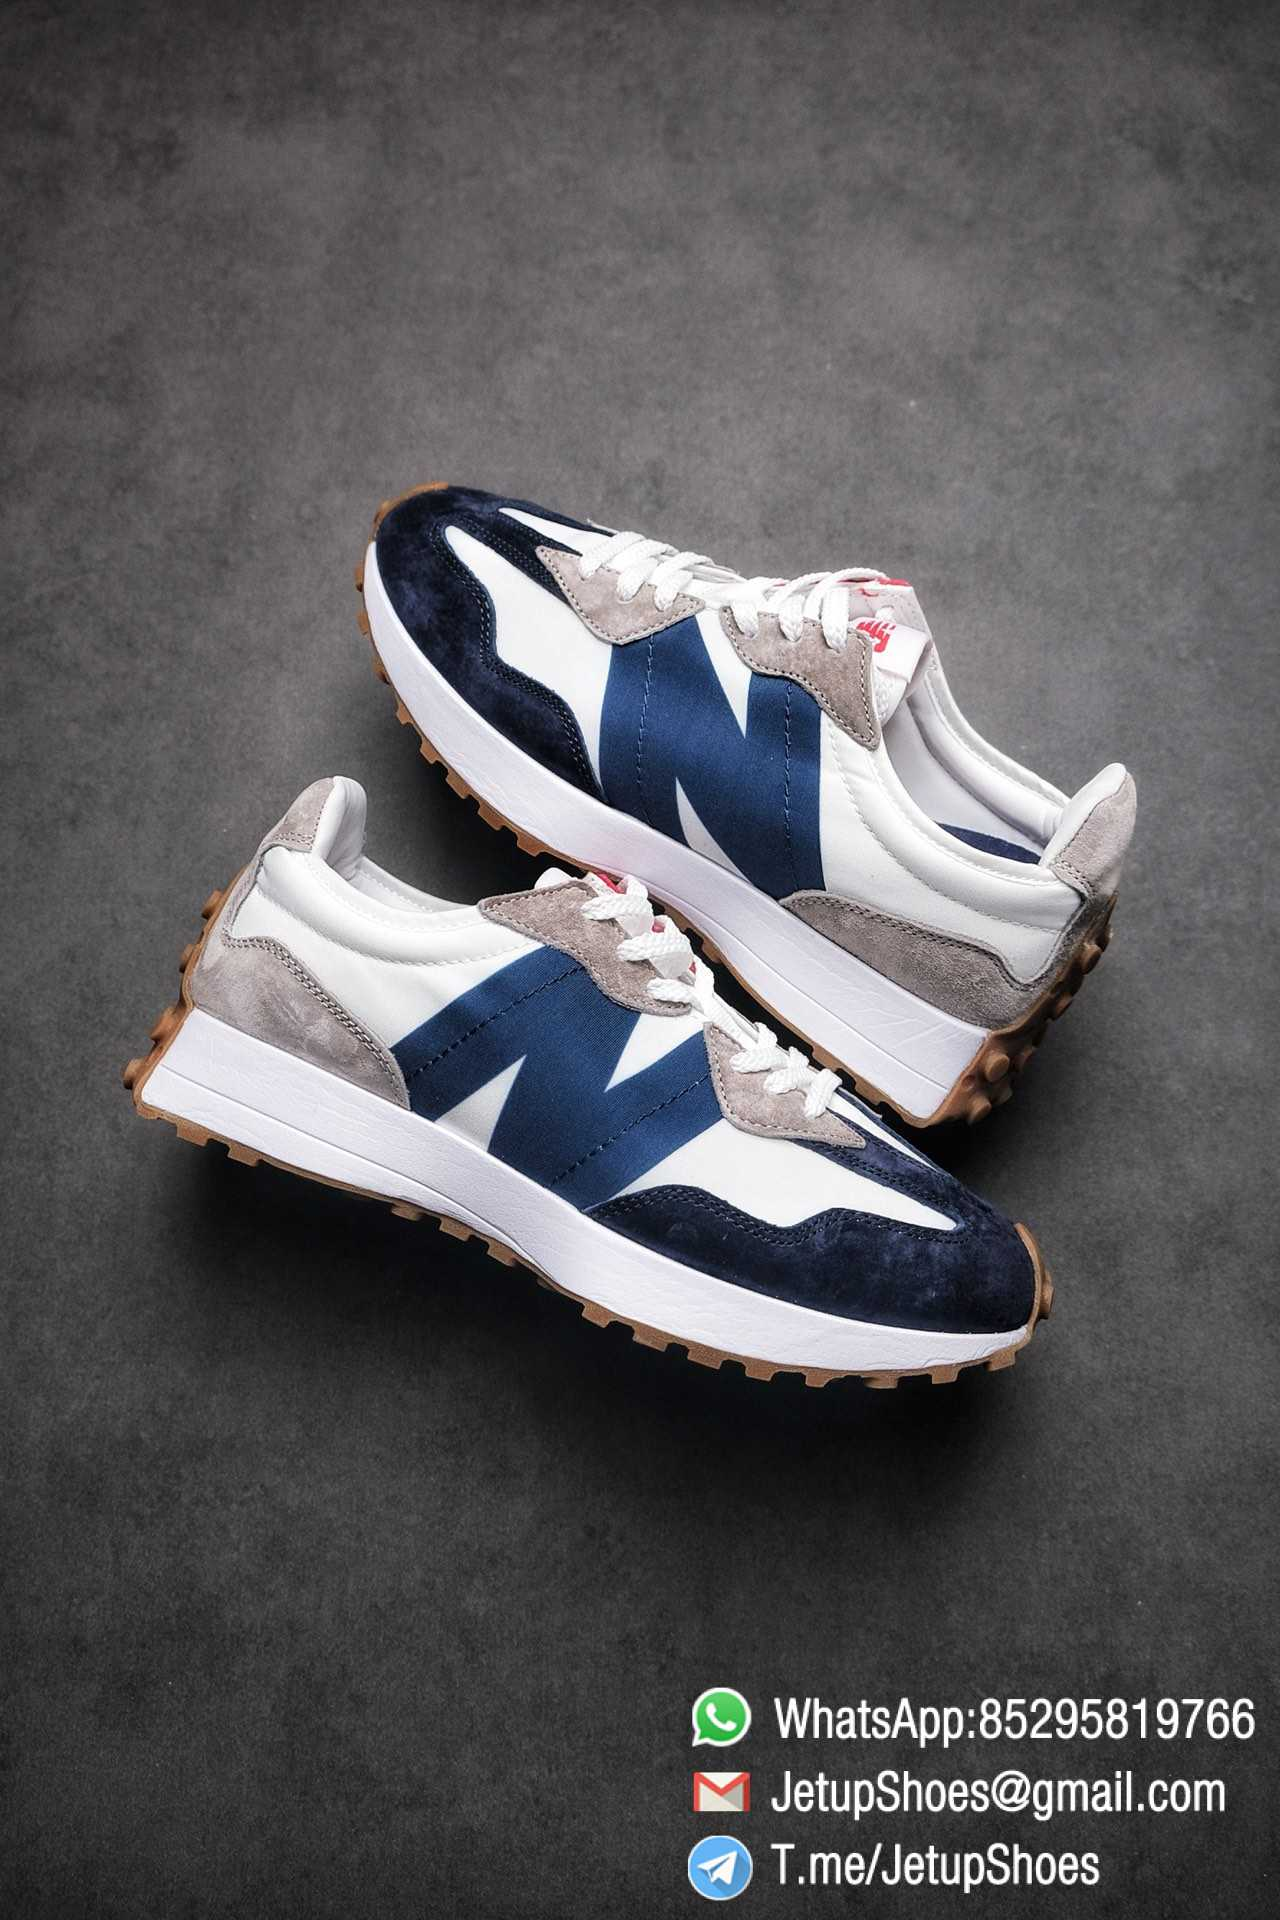 Best Replica New Balance 327 Navy White Gum Running Shoes SKU MS327WR Top Quality Snkrs 01